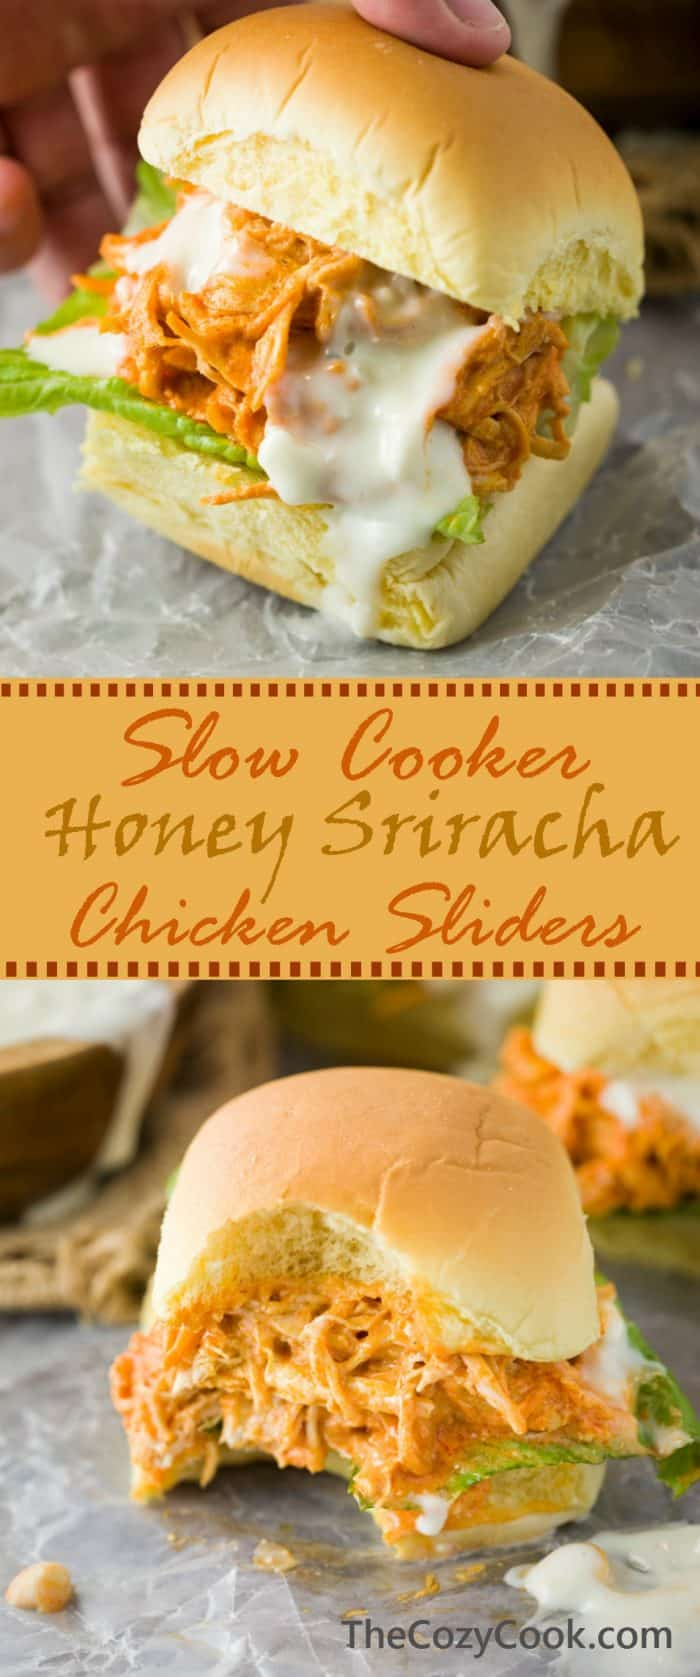 These slow cooker honey sriracha chicken sliders feature tender, slow cooked shredded chicken smothered in a sweet and tangy honey sriracha sauce, placed in a fresh slider roll and drizzled with savory blue cheese. | The Cozy Cook | #Sriracha #Chicken #Sliders #HoneySriracha #Sandwiches #SlowCooker #CrockPot #BlueCheese #BuffaloSauce